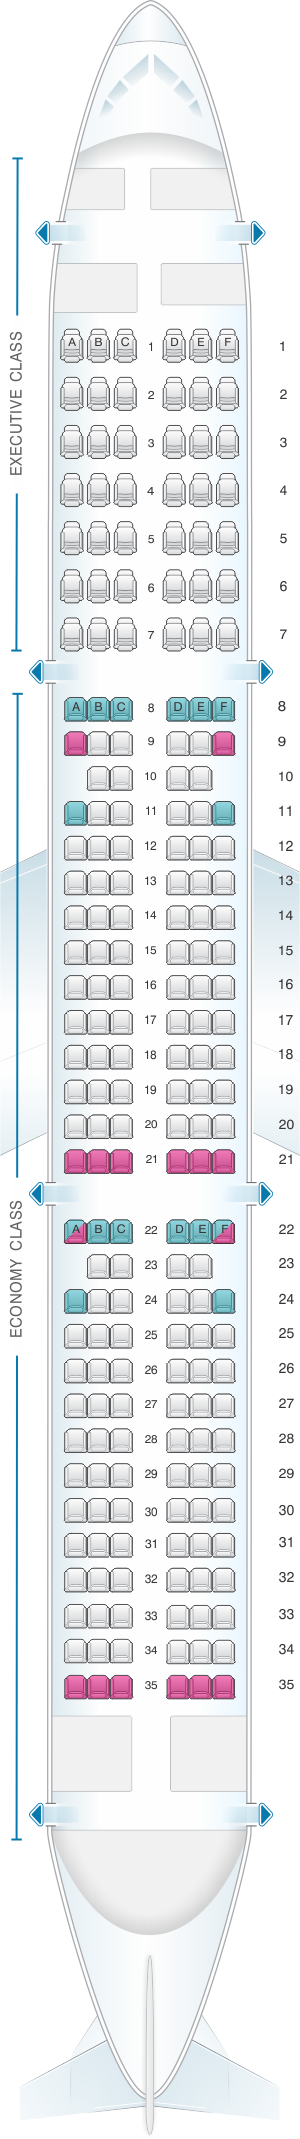 Seat Map Tap Portugal Airbus A321